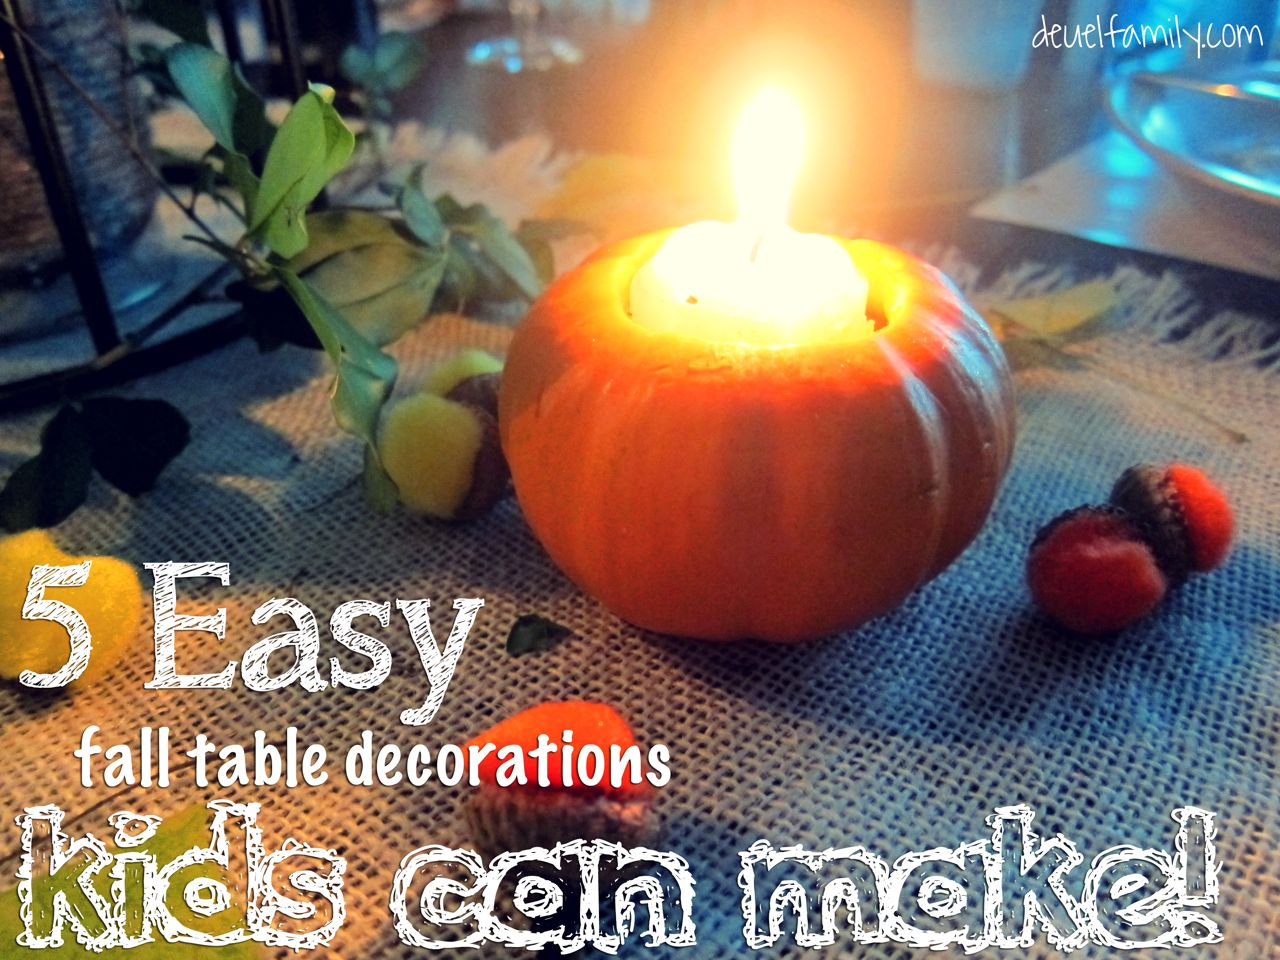 Five Fall Table Decorations Kids Can Make! | The Deuel Family Blog